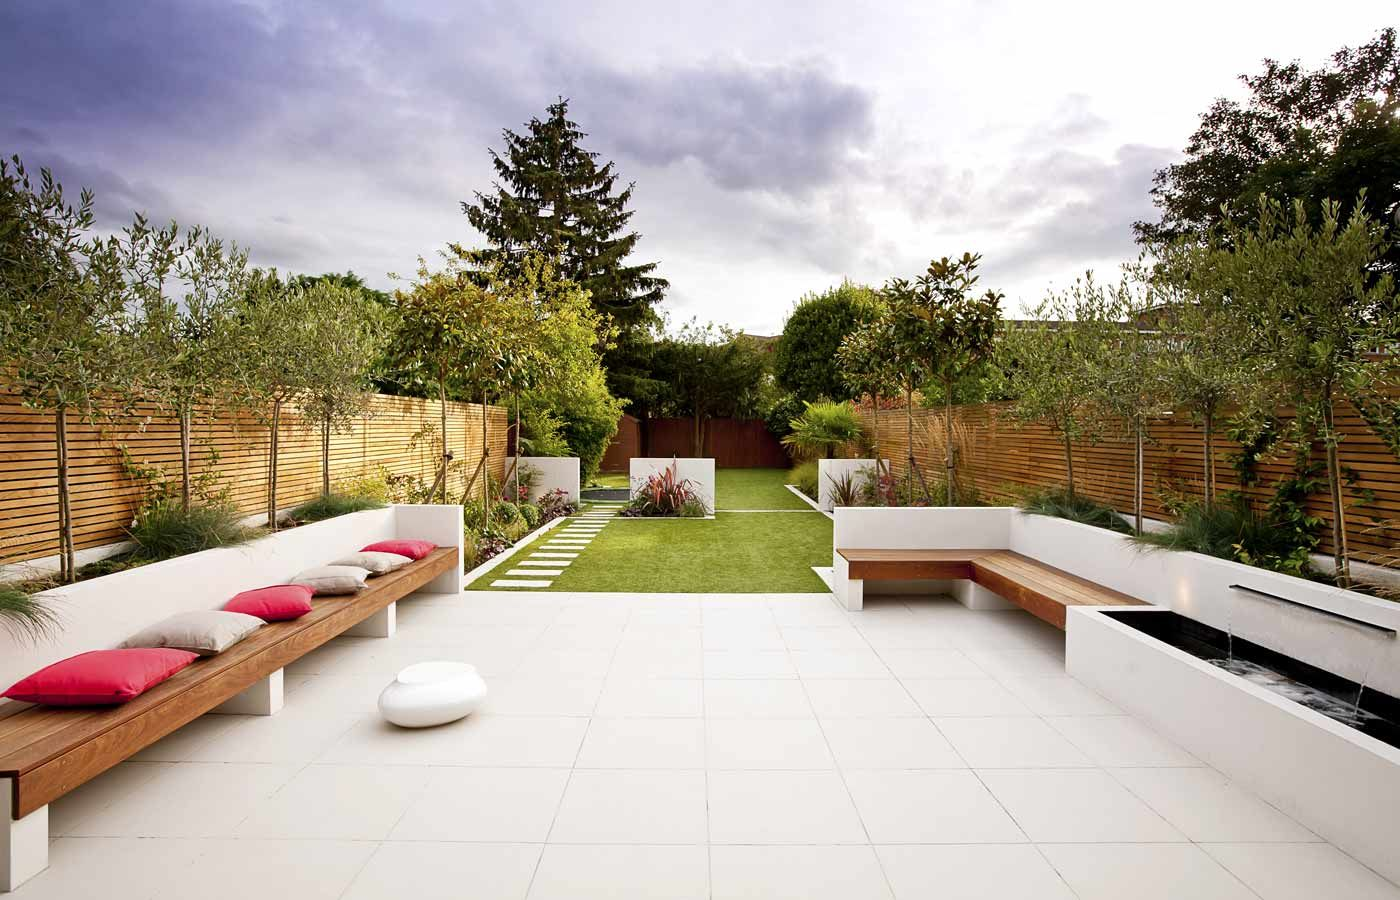 Garden Patio Designs garden design plans for long garden #image17 | rzuty rysunki